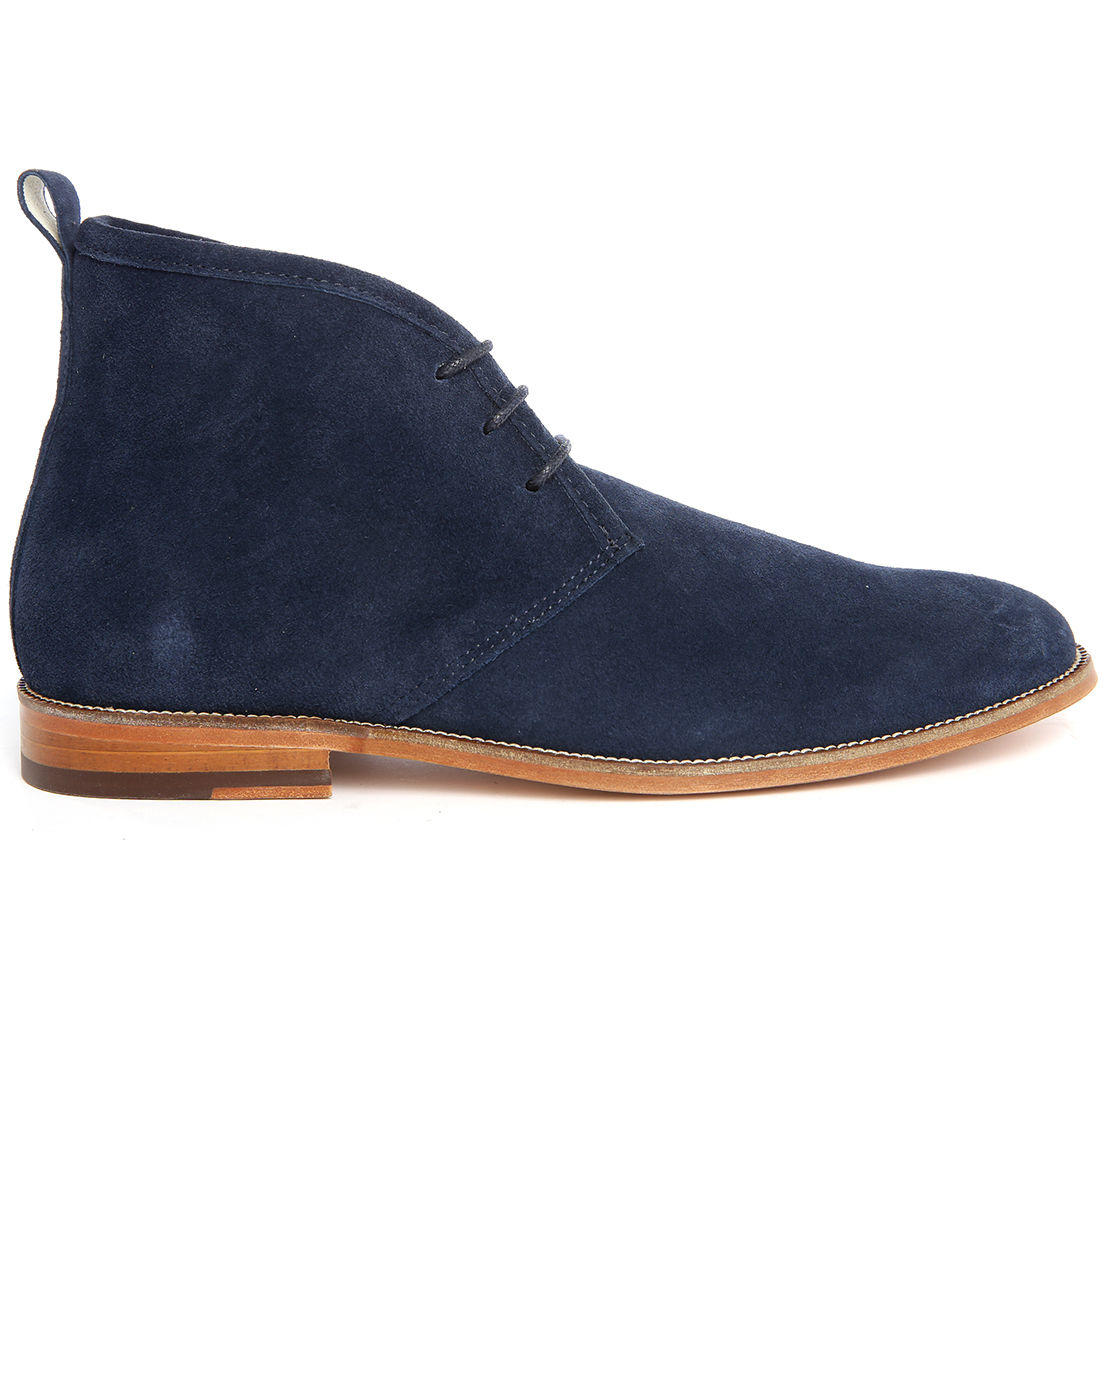 bobbies le monsieur navy suede desert boots in blue for